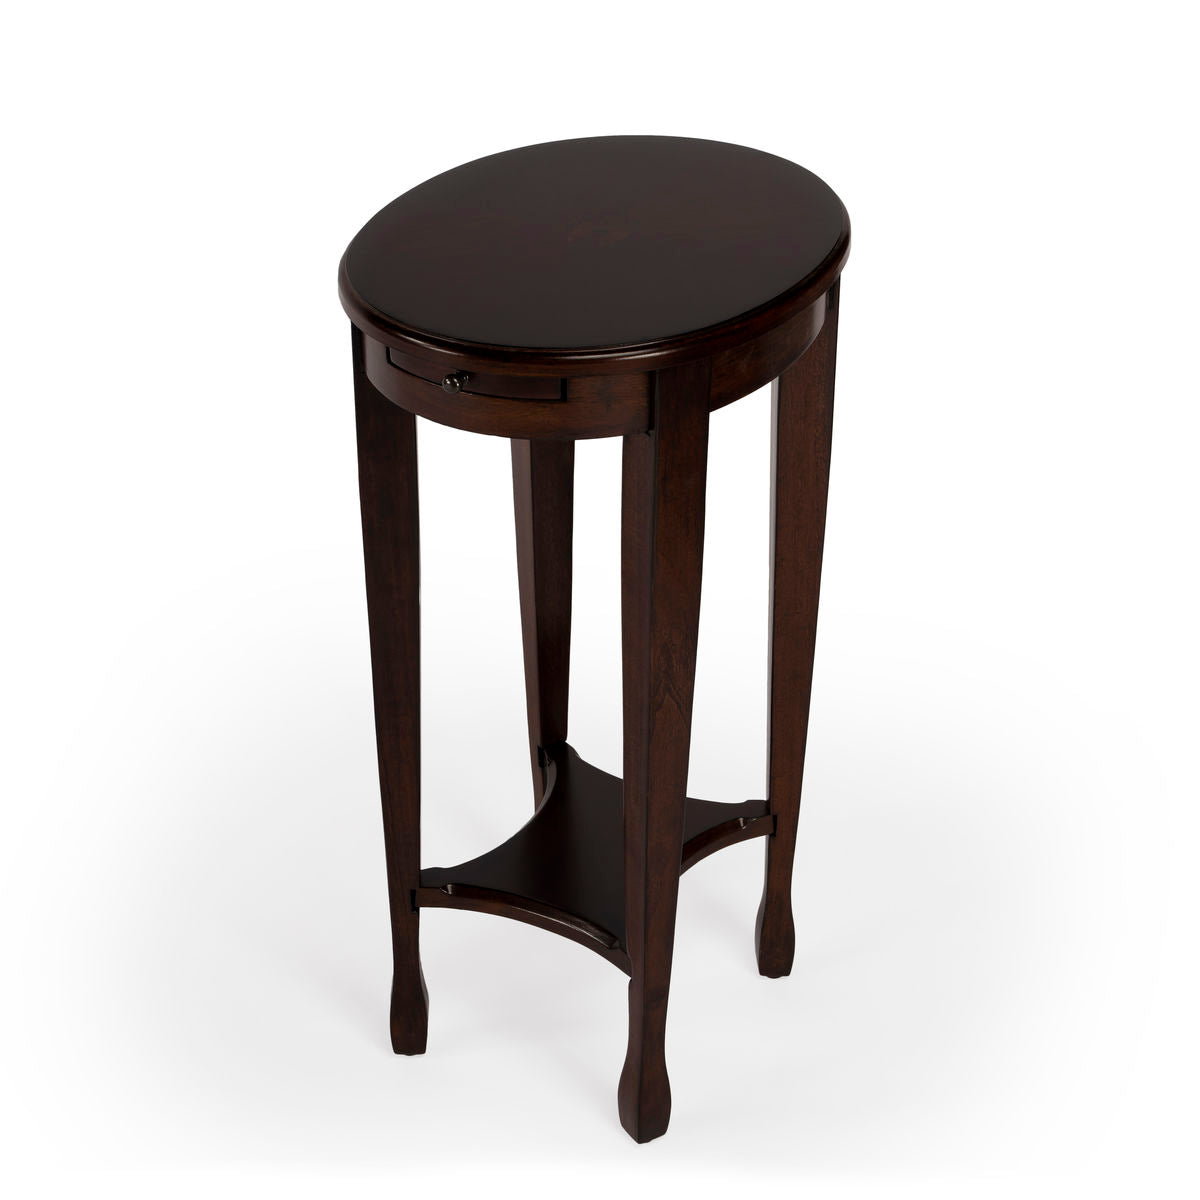 Arielle Chestnut Burl Accent Table by Butler Specialty Company 1483108